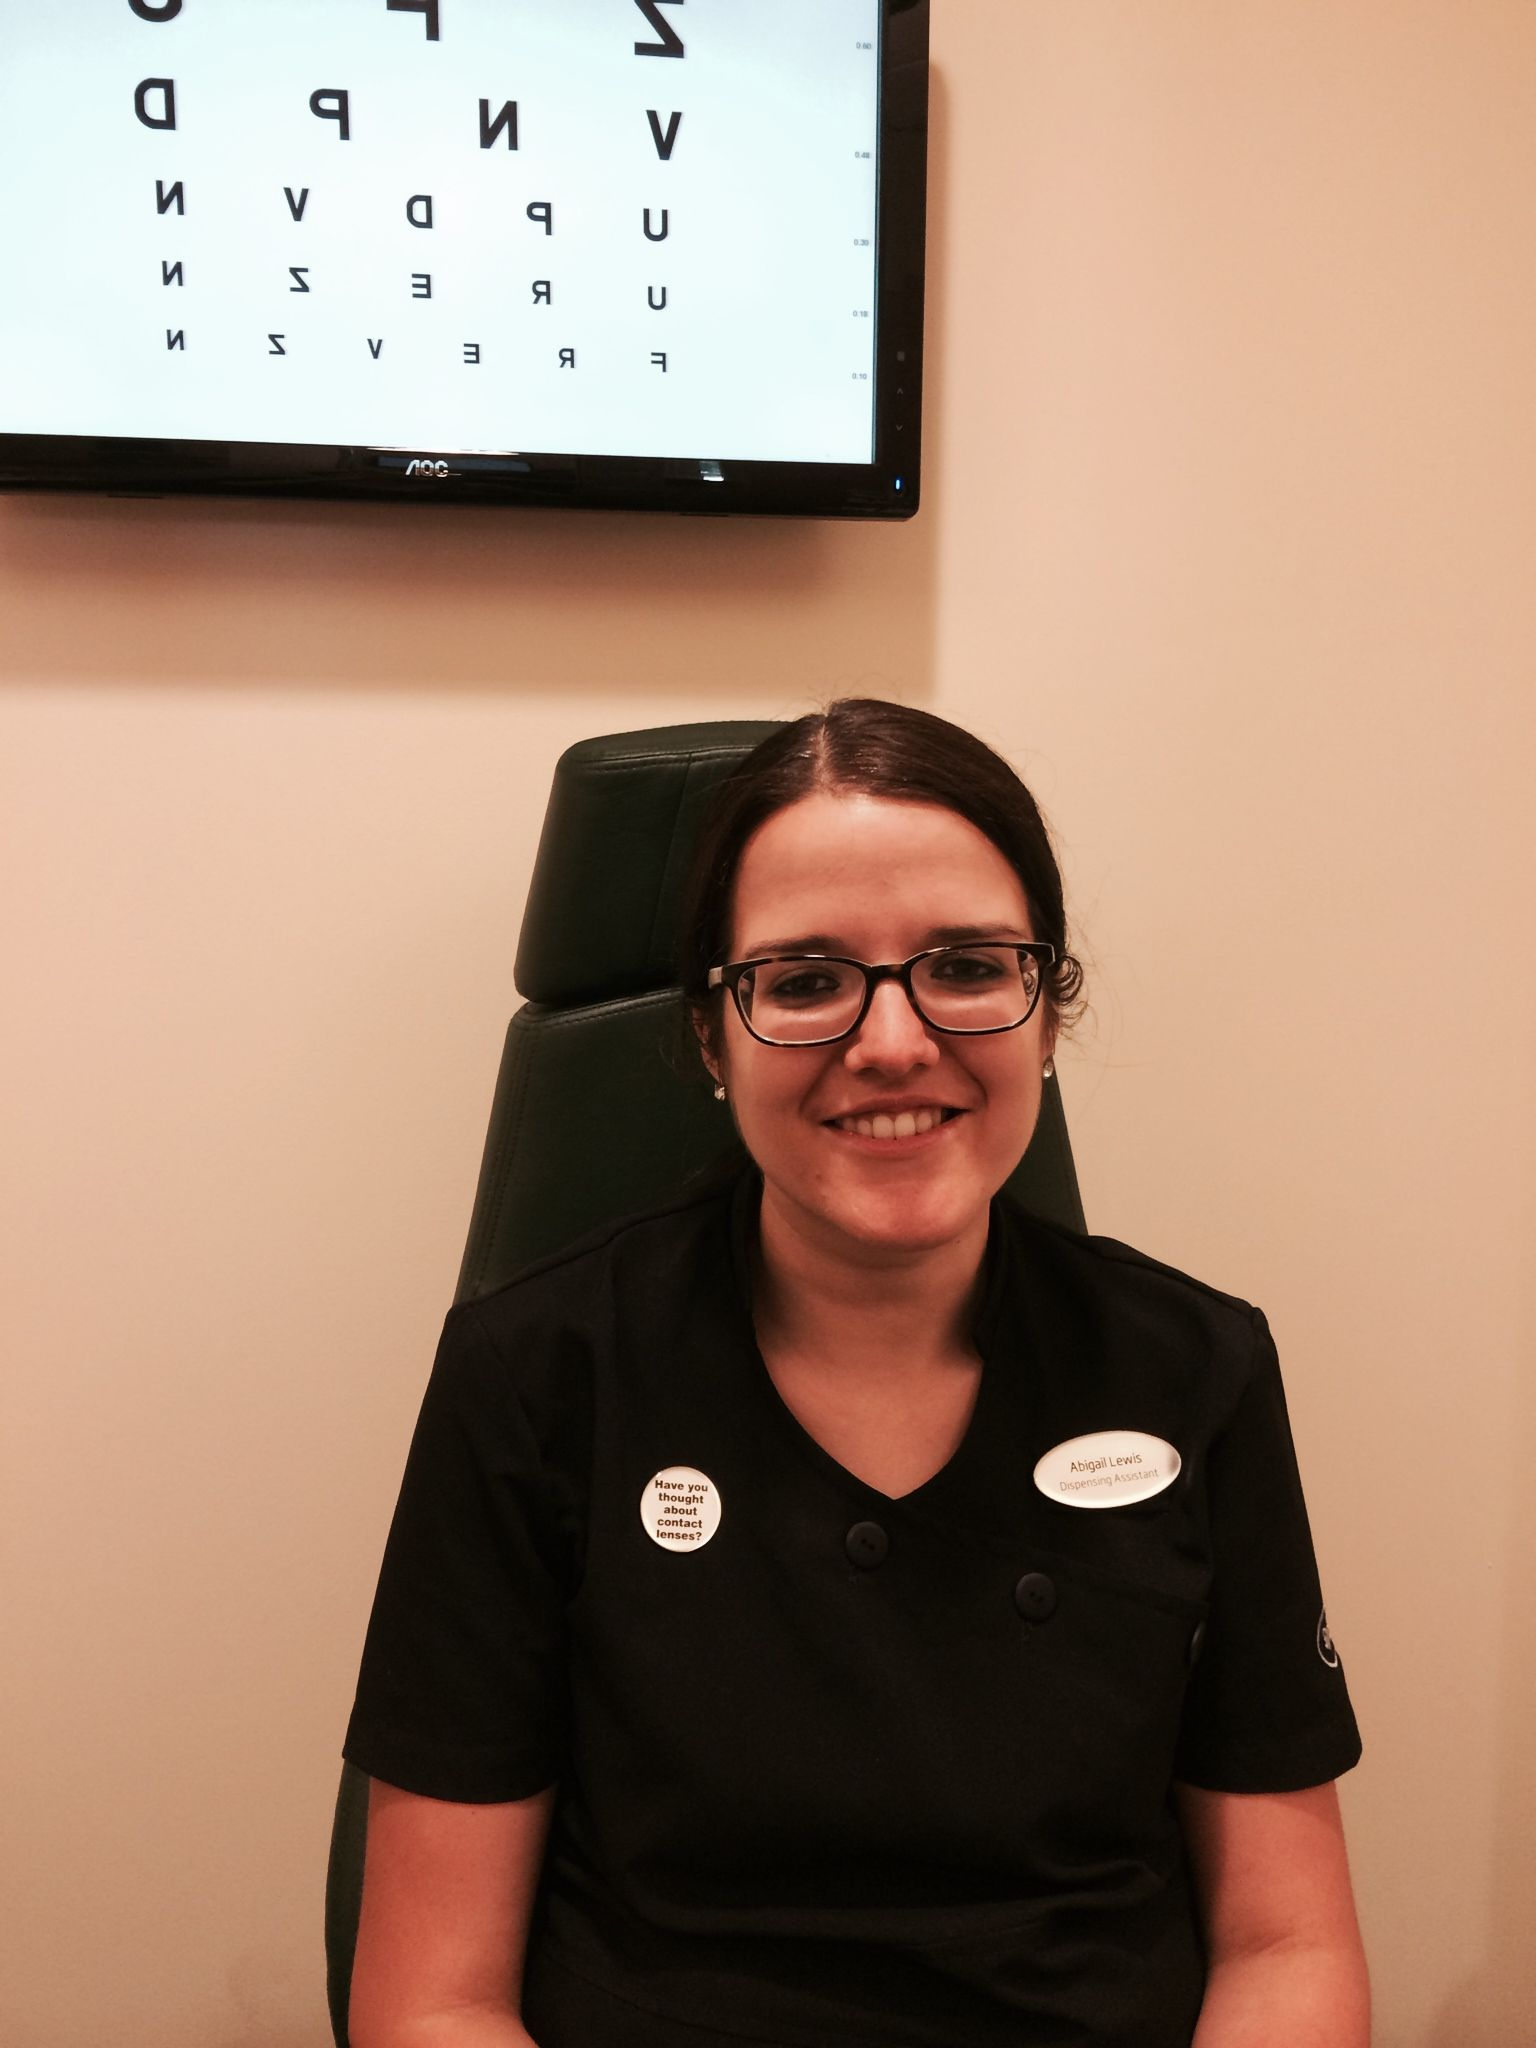 Abigail Lawis, Optical Assistant Certificate 4 Qualified at Specsavers Minehead